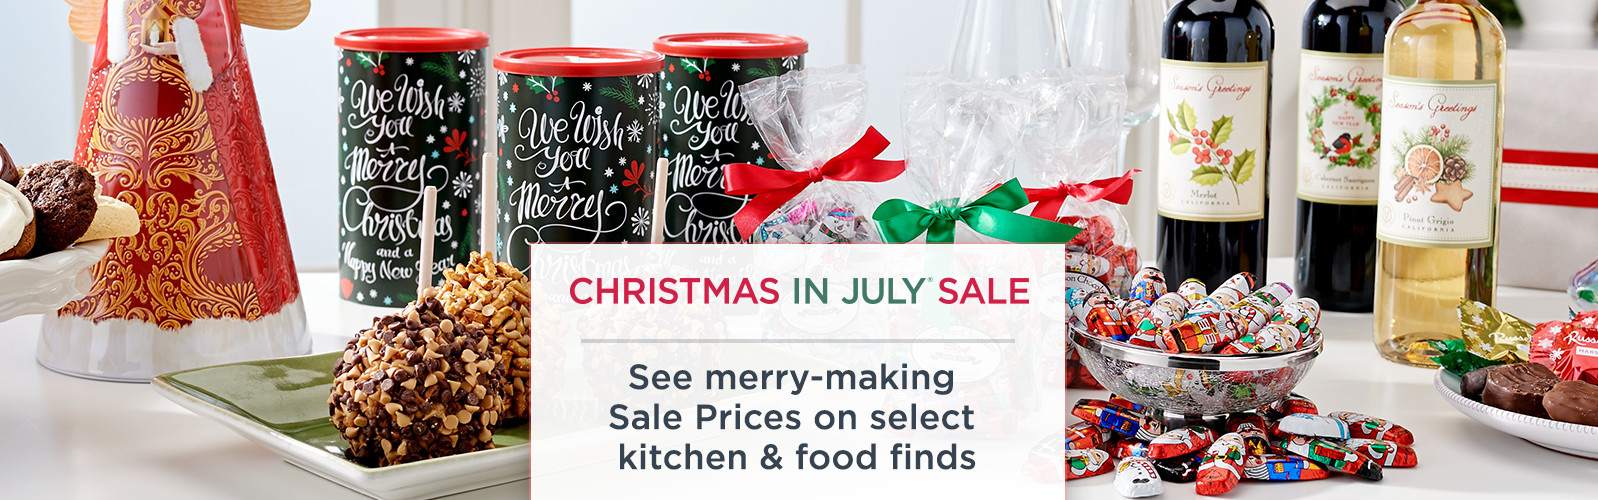 Christmas in July Sale. See merry-making Sale Prices on select kitchen & food finds